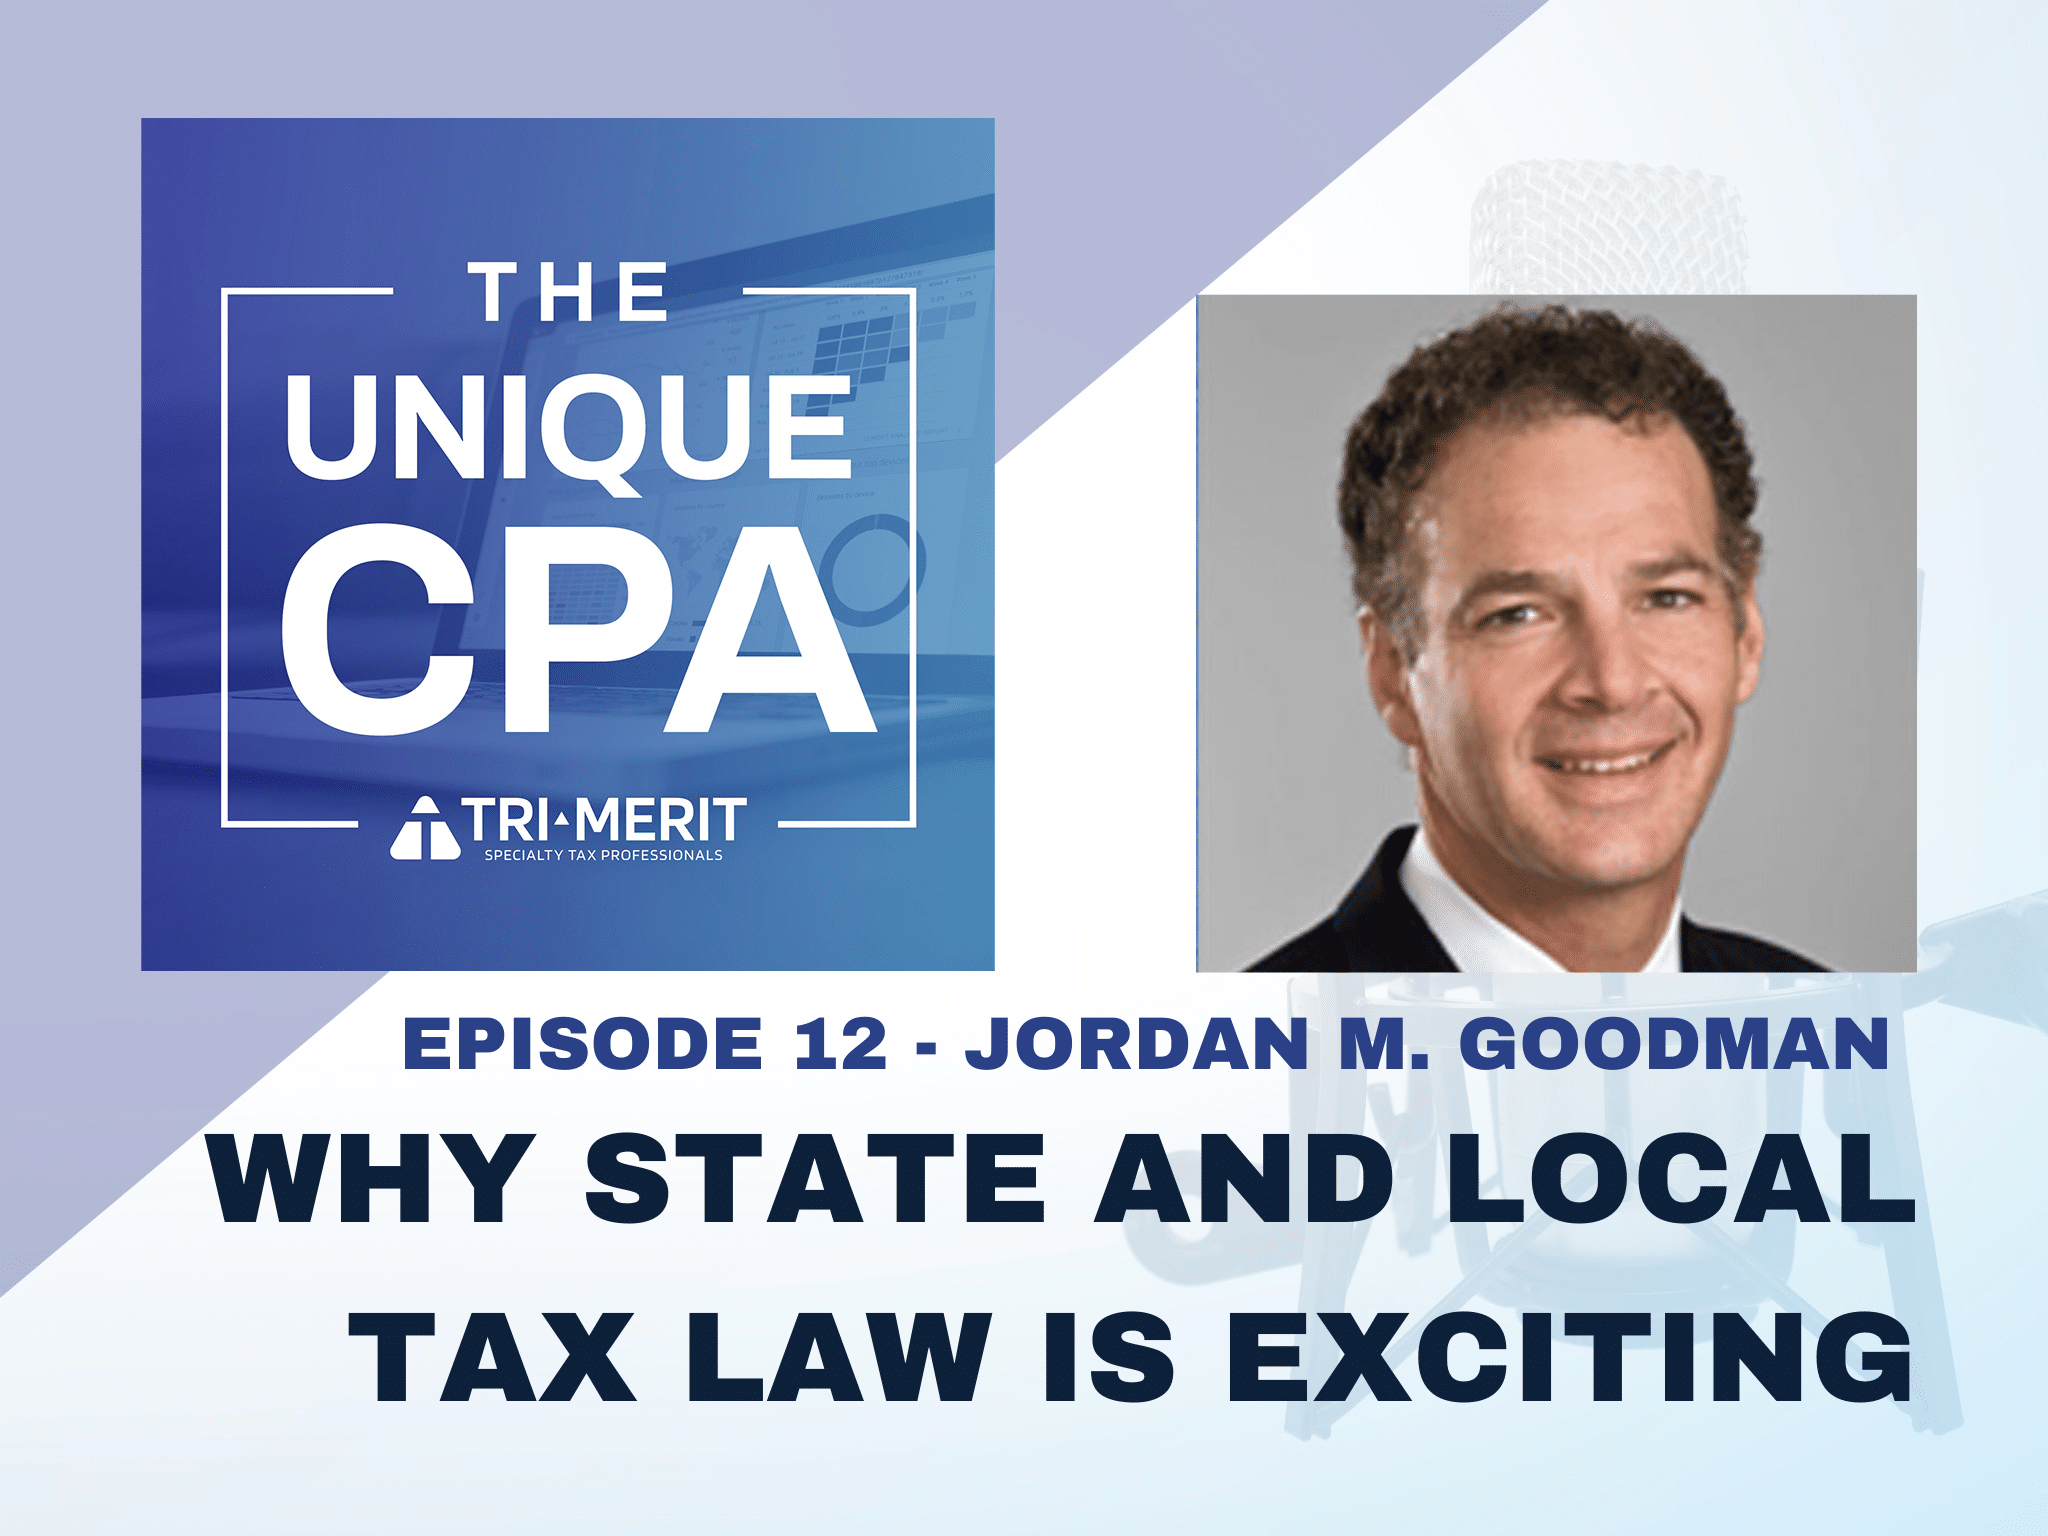 The Unique CPA Feature Image Ep 12 - Why State and Local Tax Law is Exciting - Tri-Merit